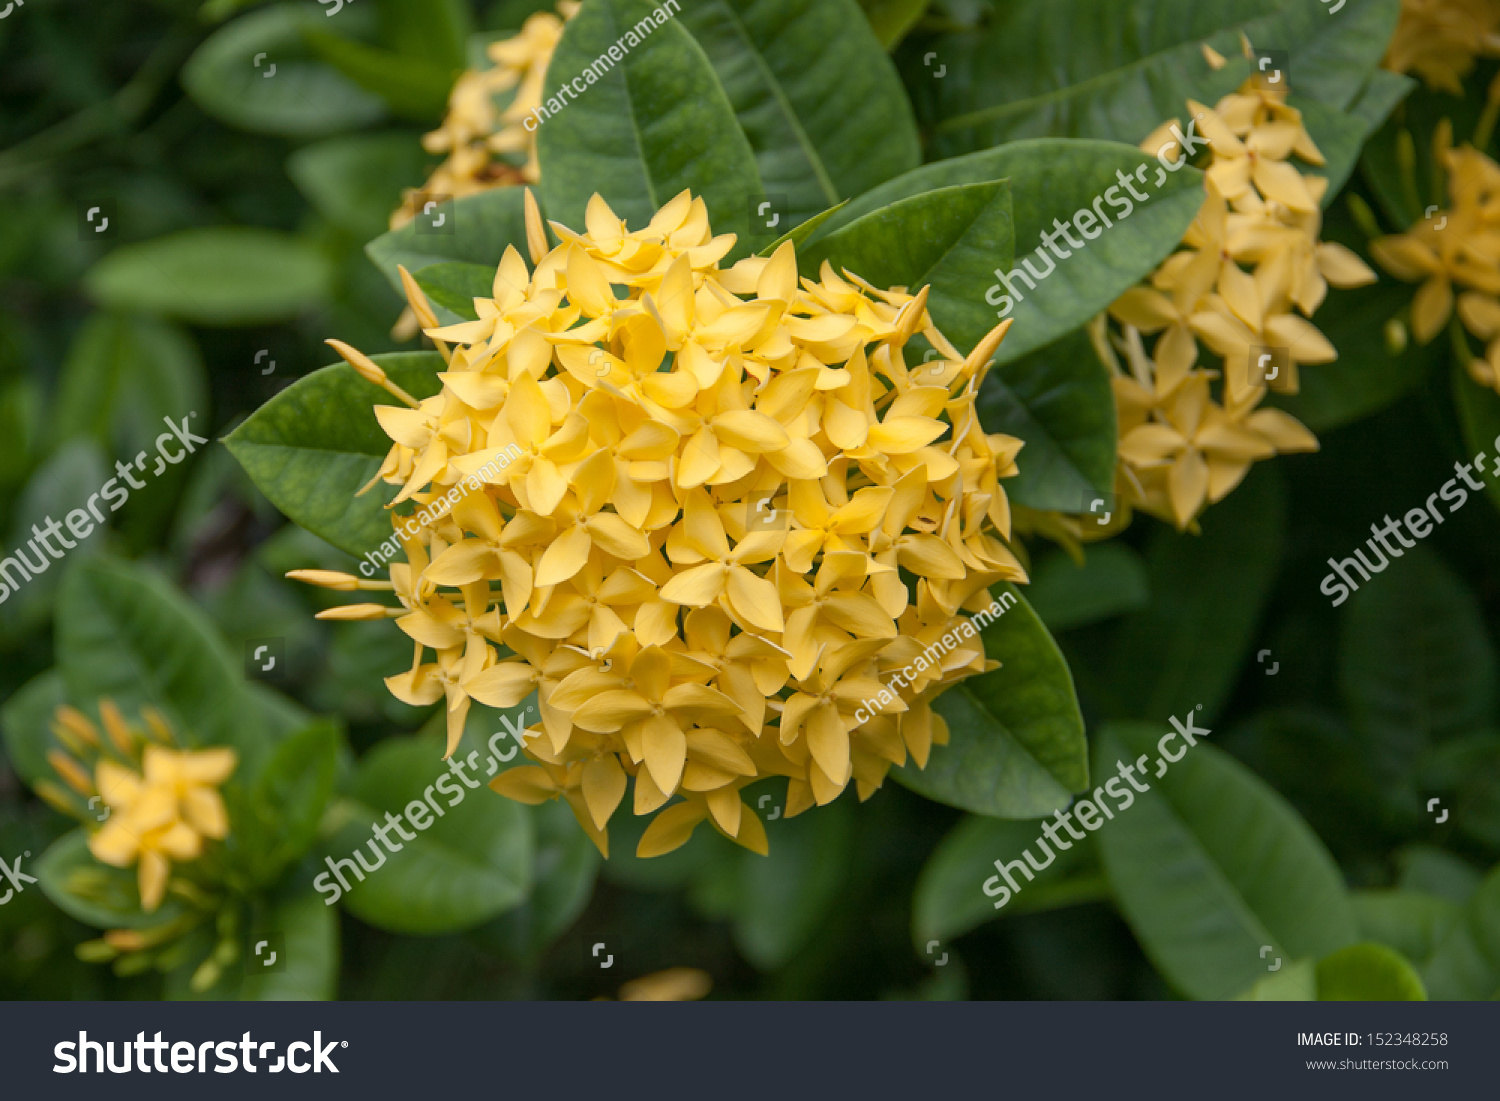 Panicle yellow ixoras west indian jasmine stock photo edit now panicle of yellow ixoras west indian jasmine flower on its plant izmirmasajfo